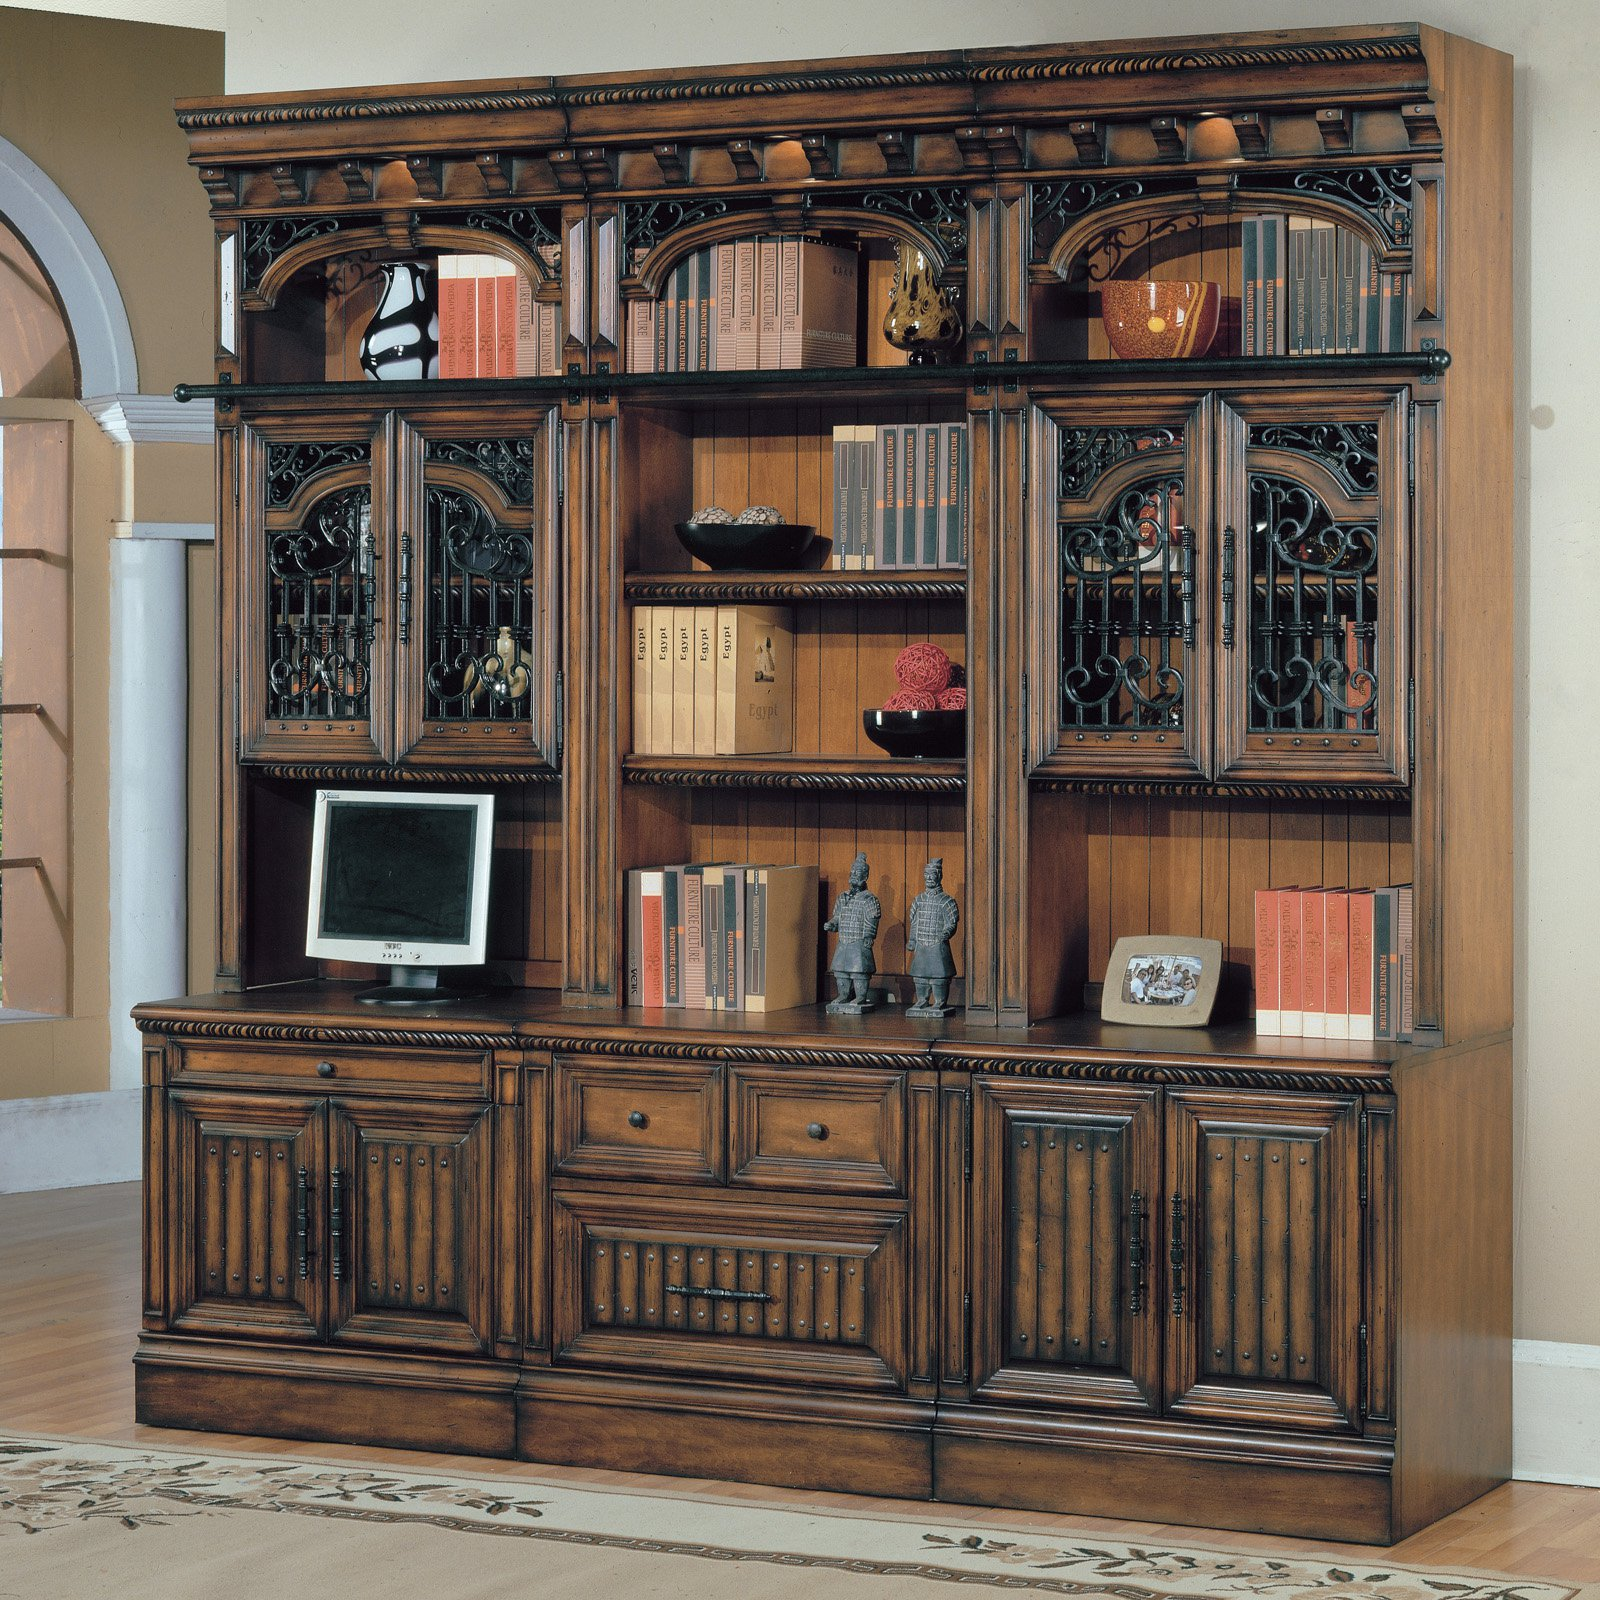 Image of: Vintage Bookcase With Glass Doors